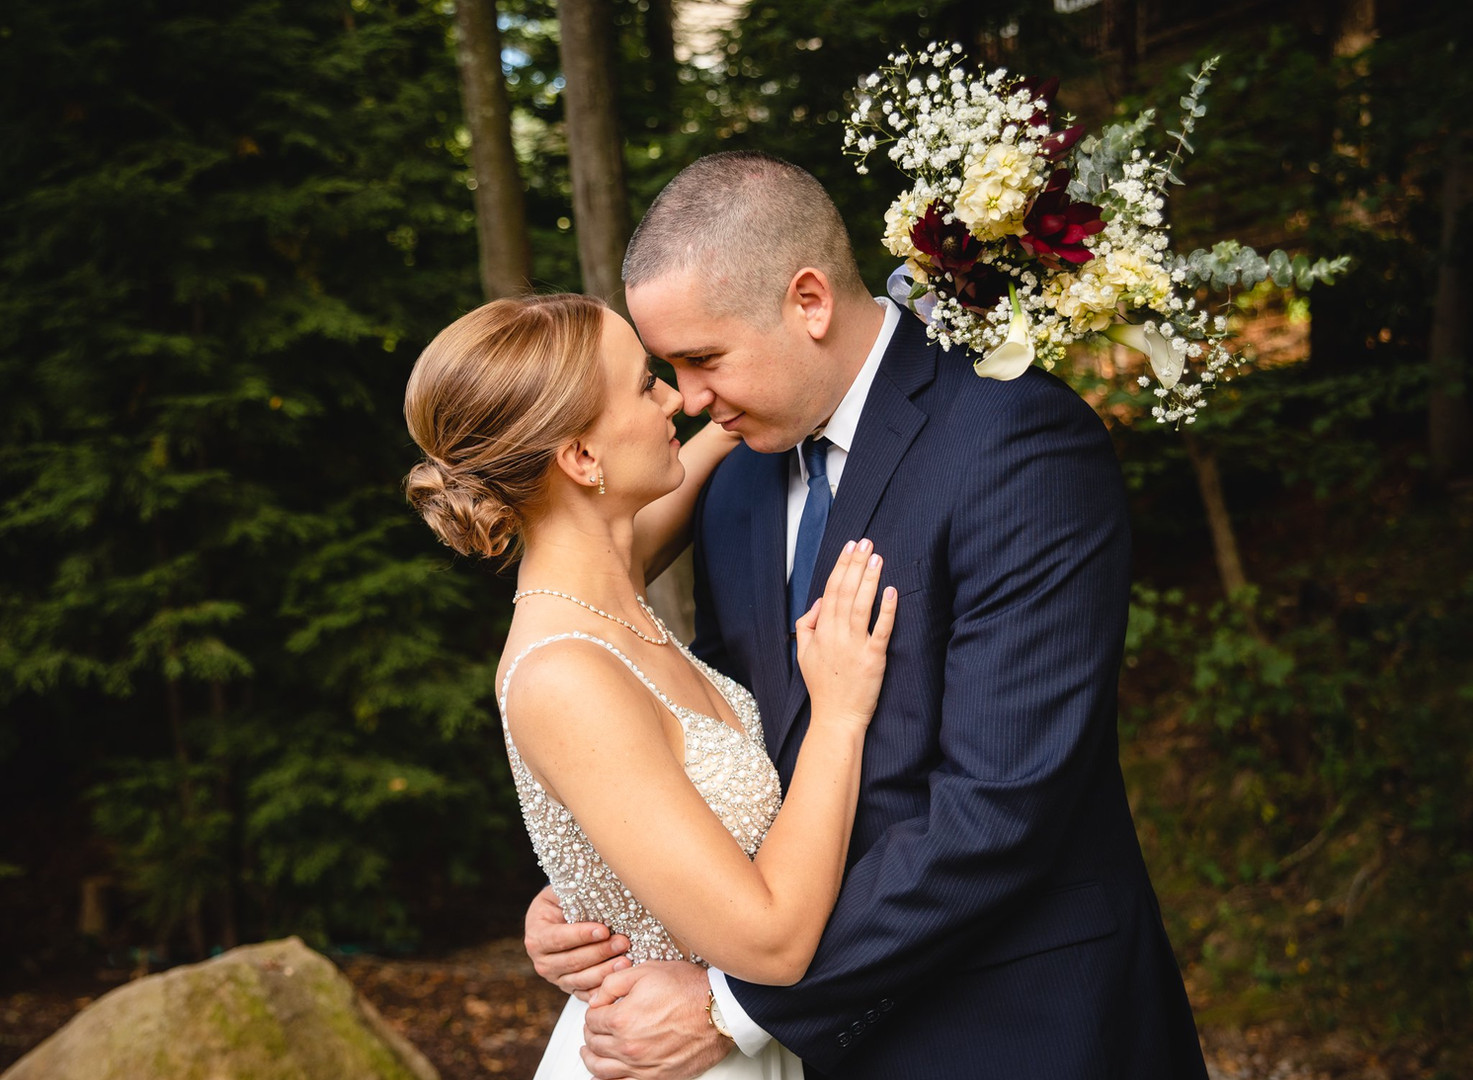 CT wedding photography bride and groom with bouquet